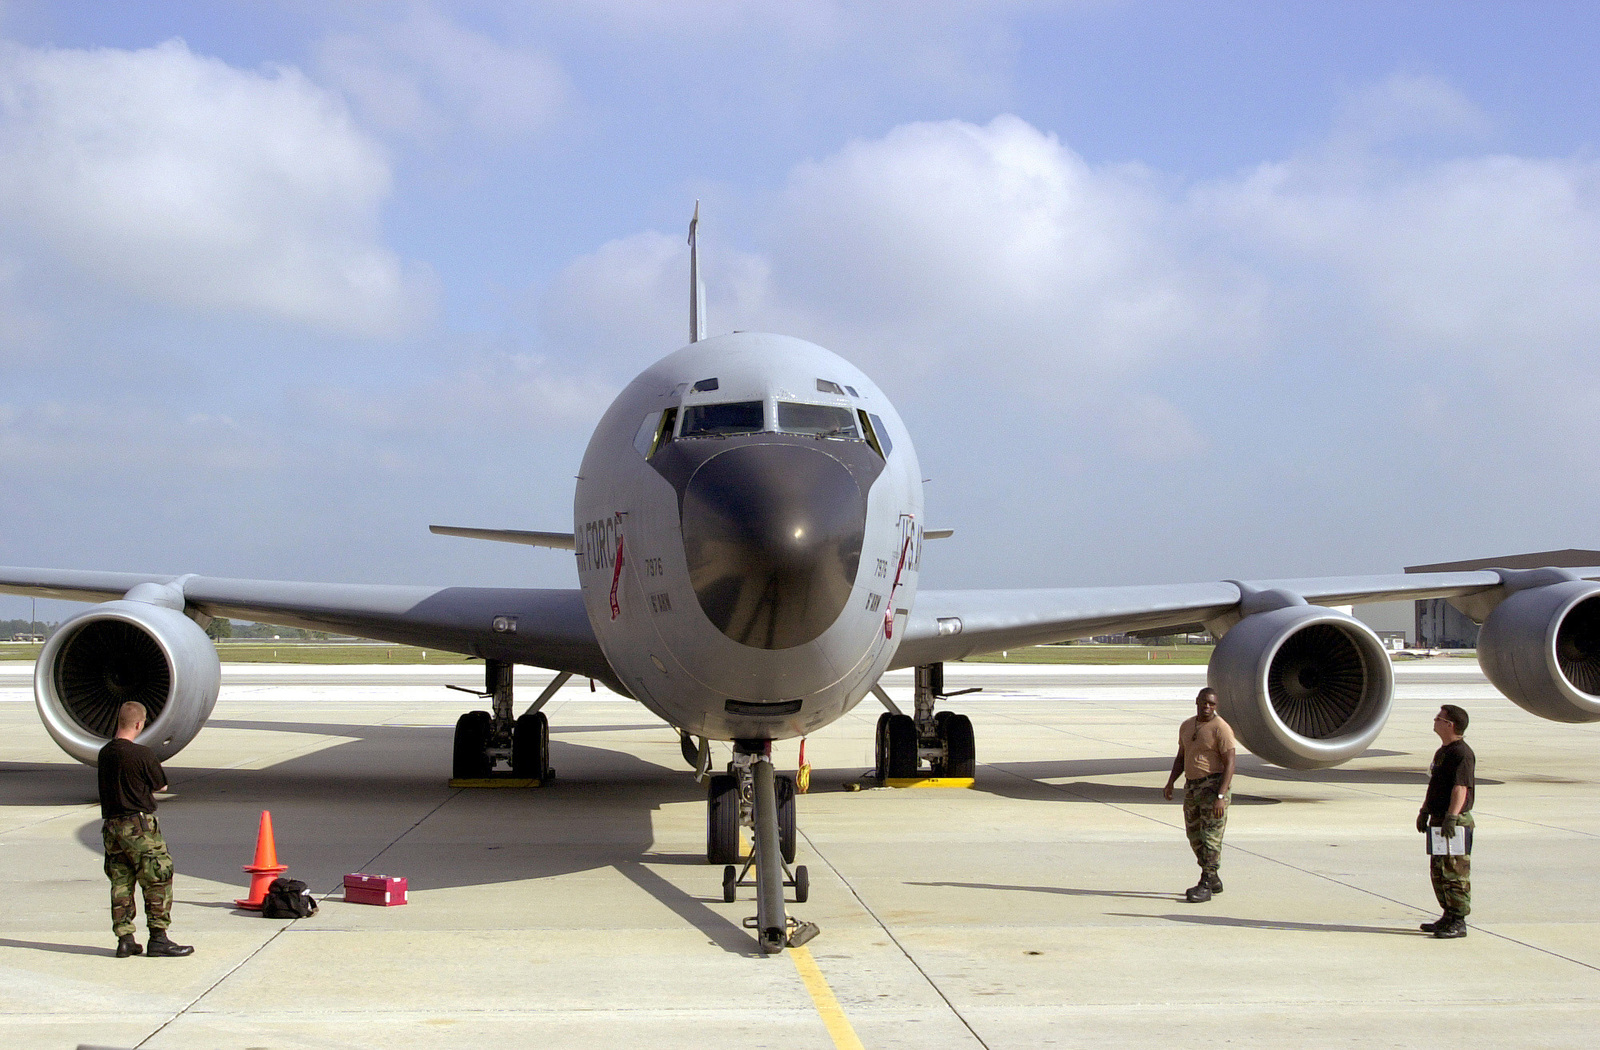 Straight on medium shot of a US Air Force KC-135 Stratotanker from MacDill Air Force Base, Florida. Standing in front of the aircraft are (From left to right), SENIOR AIRMAN Nick Demarco, Flying Crew CHIEF, SRA Nate Roberson, Hydraulic SPECIALIST and STAFF Sergeant Nick Bardash, Flying Crew CHIEF. All three are from the 6th Aircraft Generation Squadron and are preparing the KC-135 for towing to MacDill's fuel pit (Not shown)